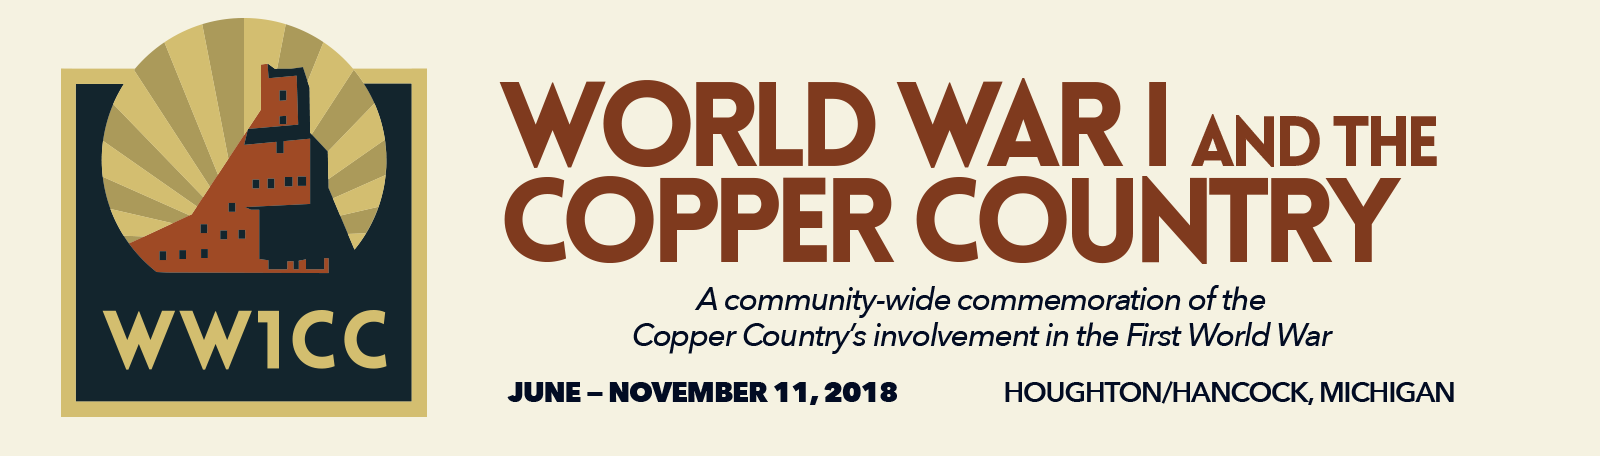 World War 1 and the Copper Country project logo and event details